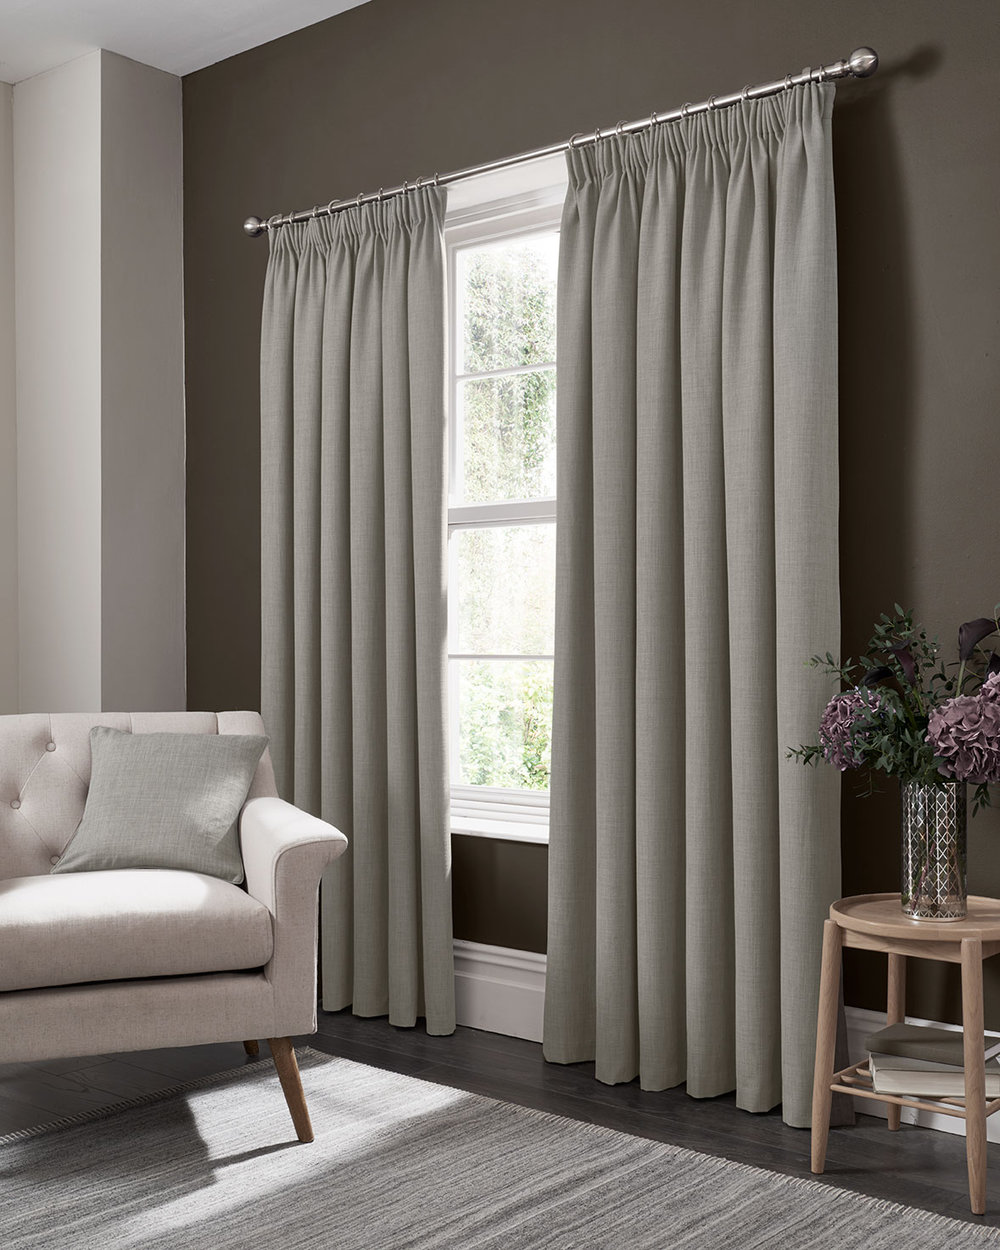 Studio G Elba Pencil Pleat Curtains  Feather Ready Made Curtains - Product code: M1105/01/90X5